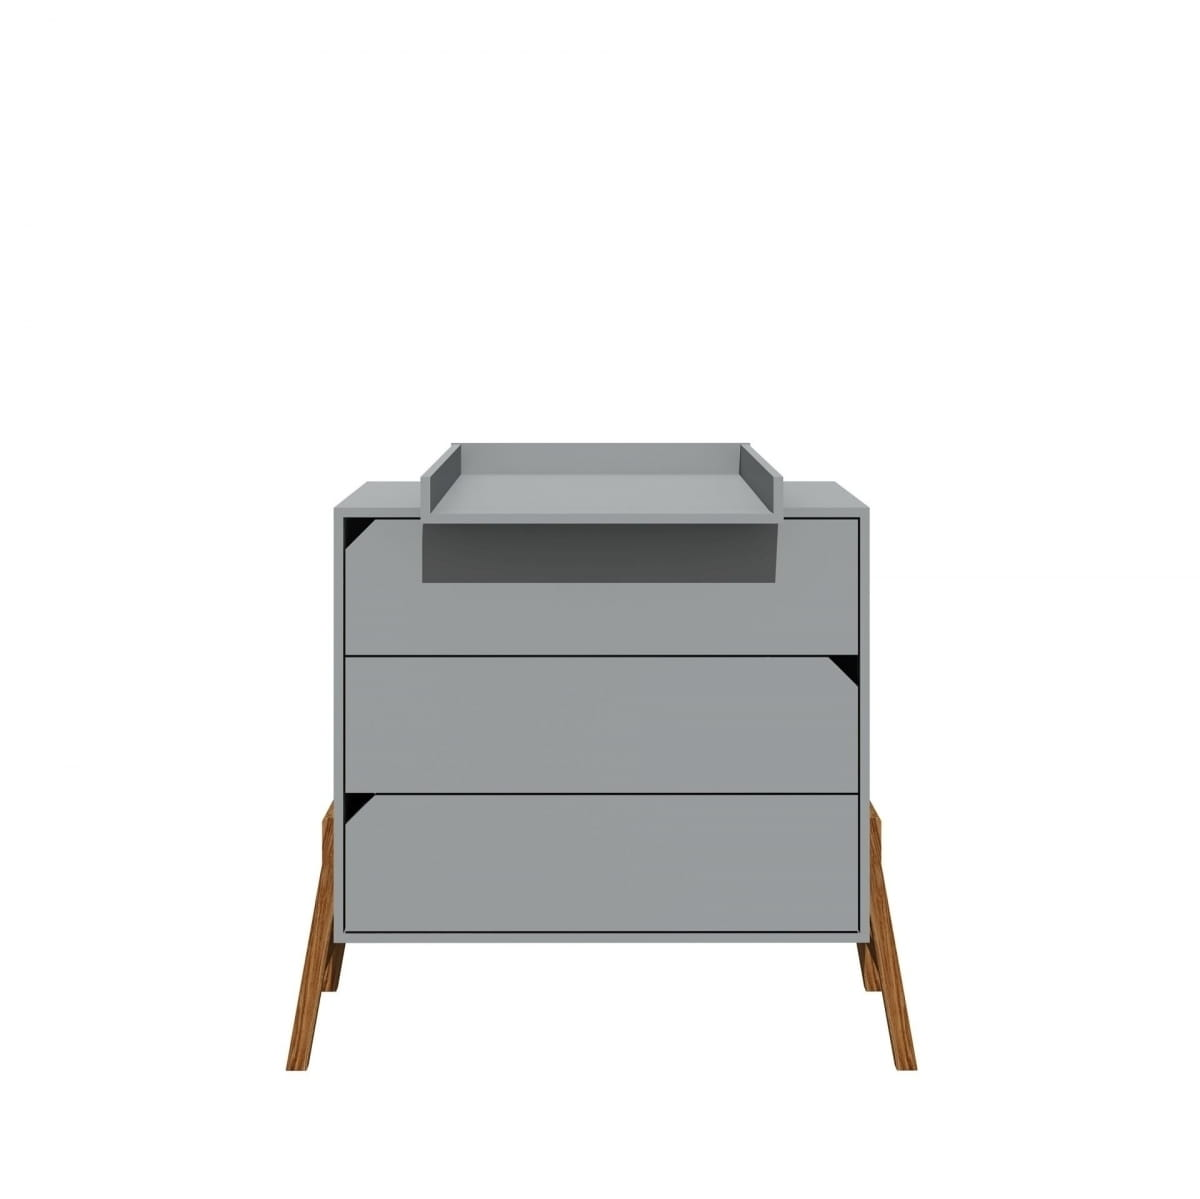 Lotta_gray_chest_of_drawers_with_changing_table_02.jpg